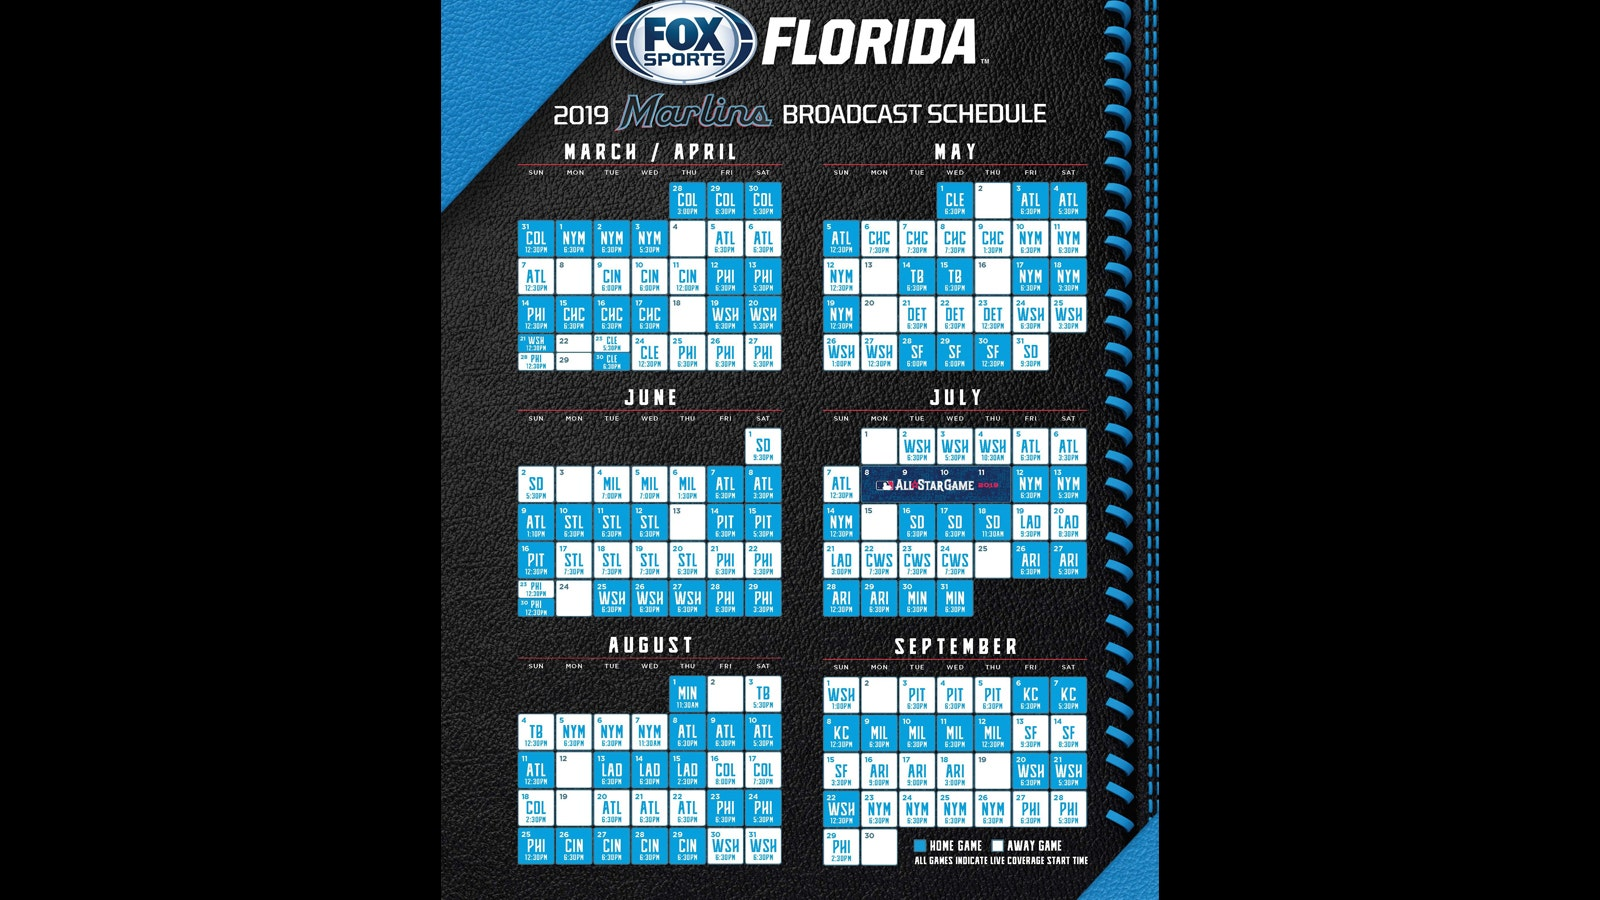 photograph relating to Atlanta Braves Tv Schedule Printable identified as FOX Sporting activities Florida announces Miami Marlins Television routine for